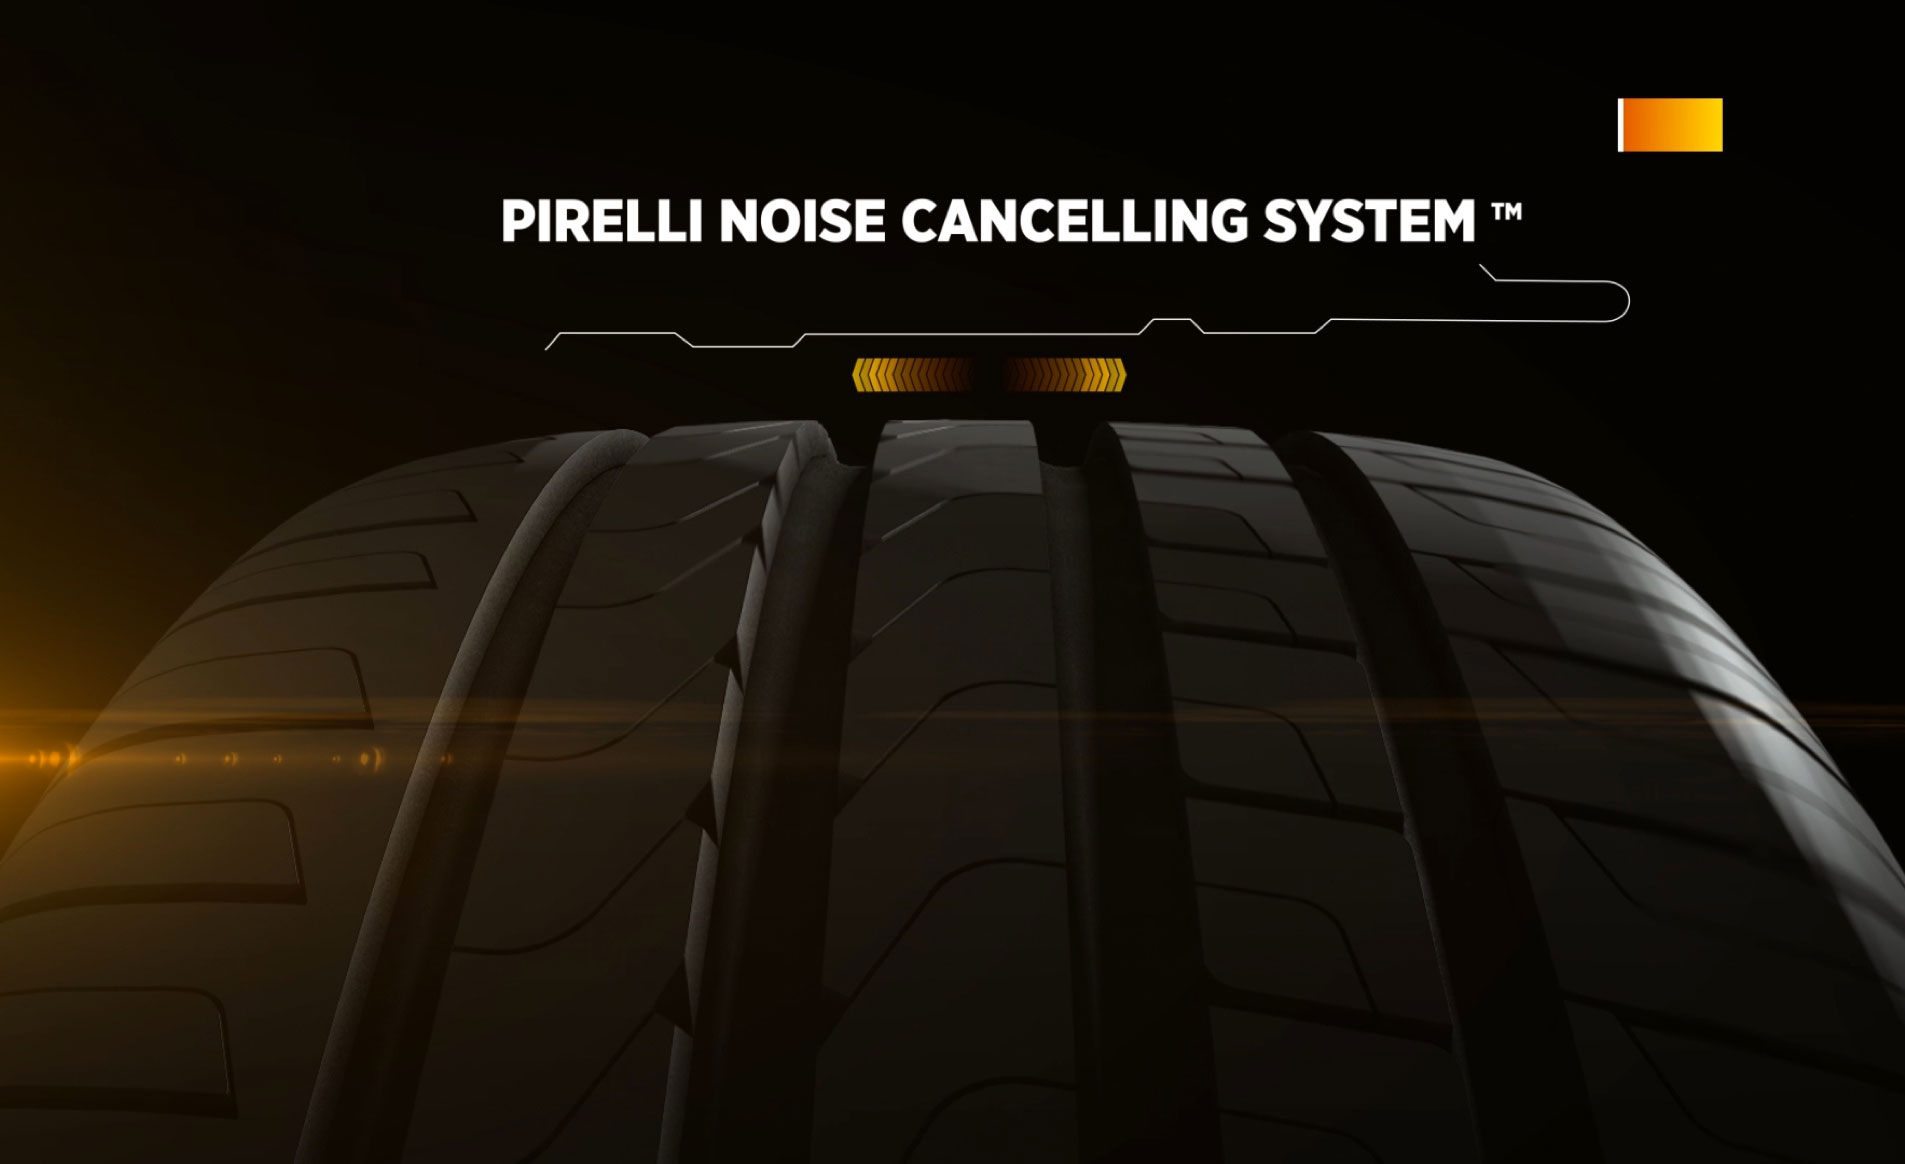 HOW PNCS TYRES WORK